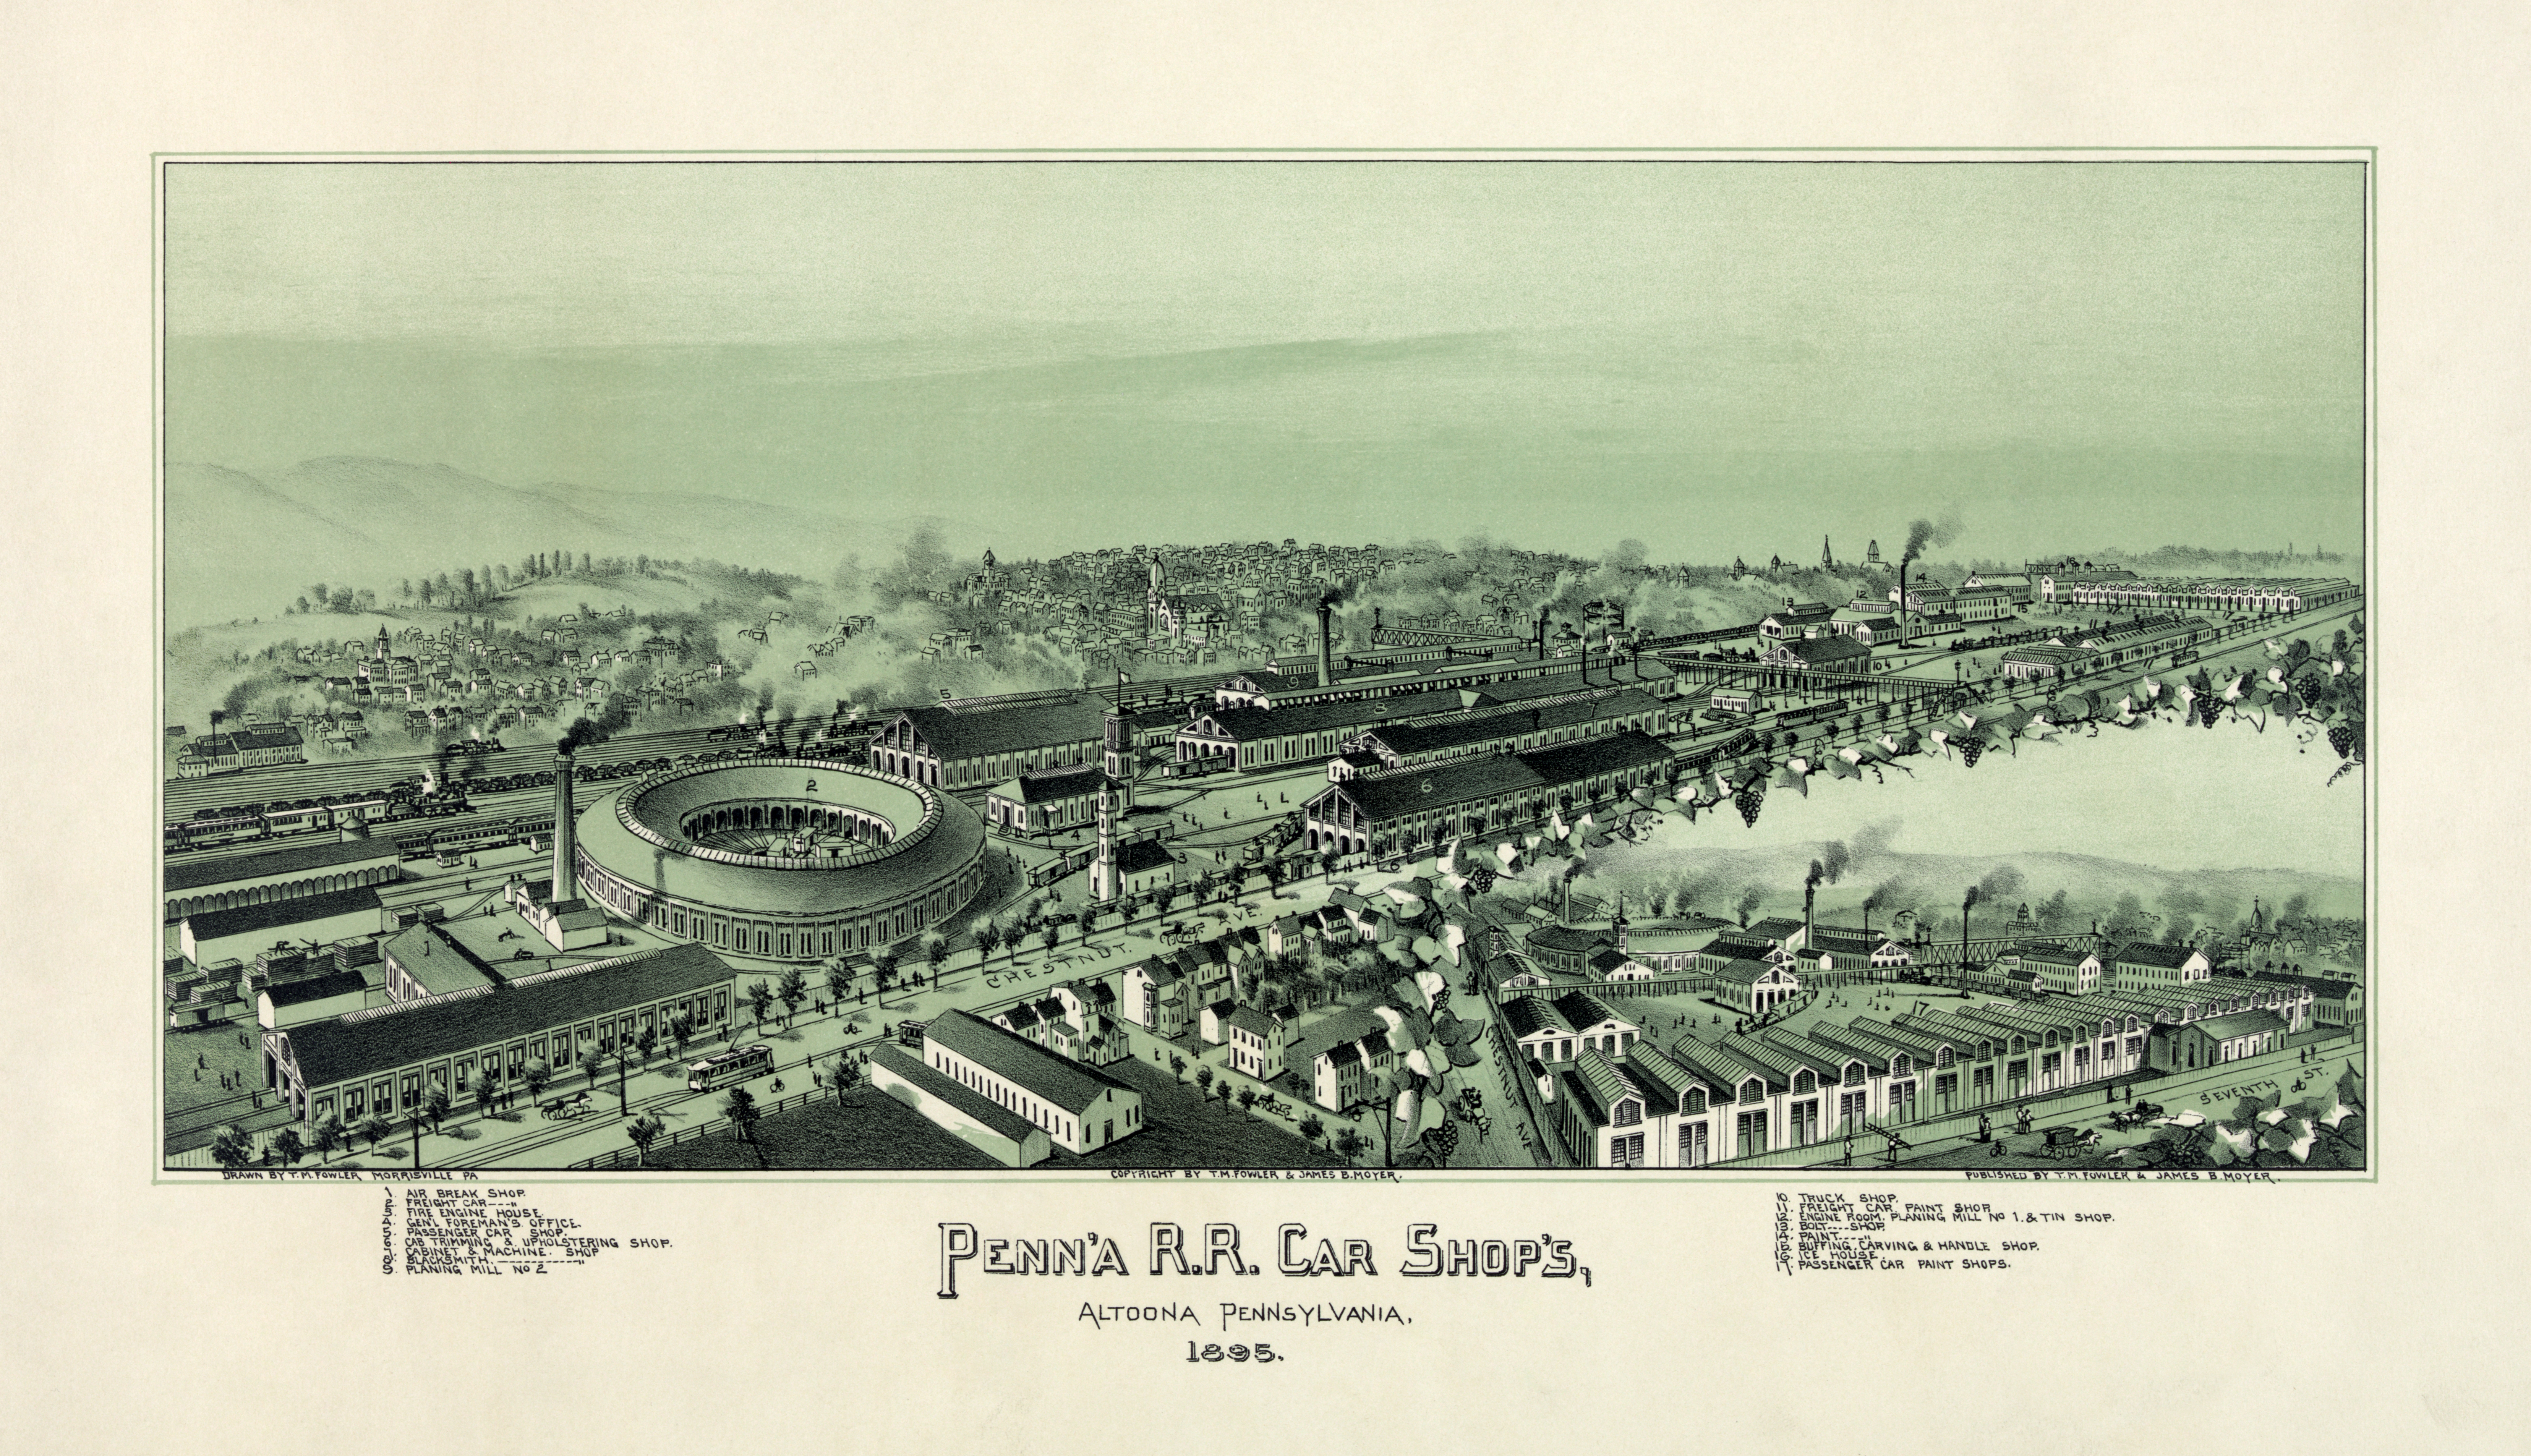 altoona pennsylvania altoona in 1895 a pennsylvania railroad town lithograph by thaddeus mortimer fowler